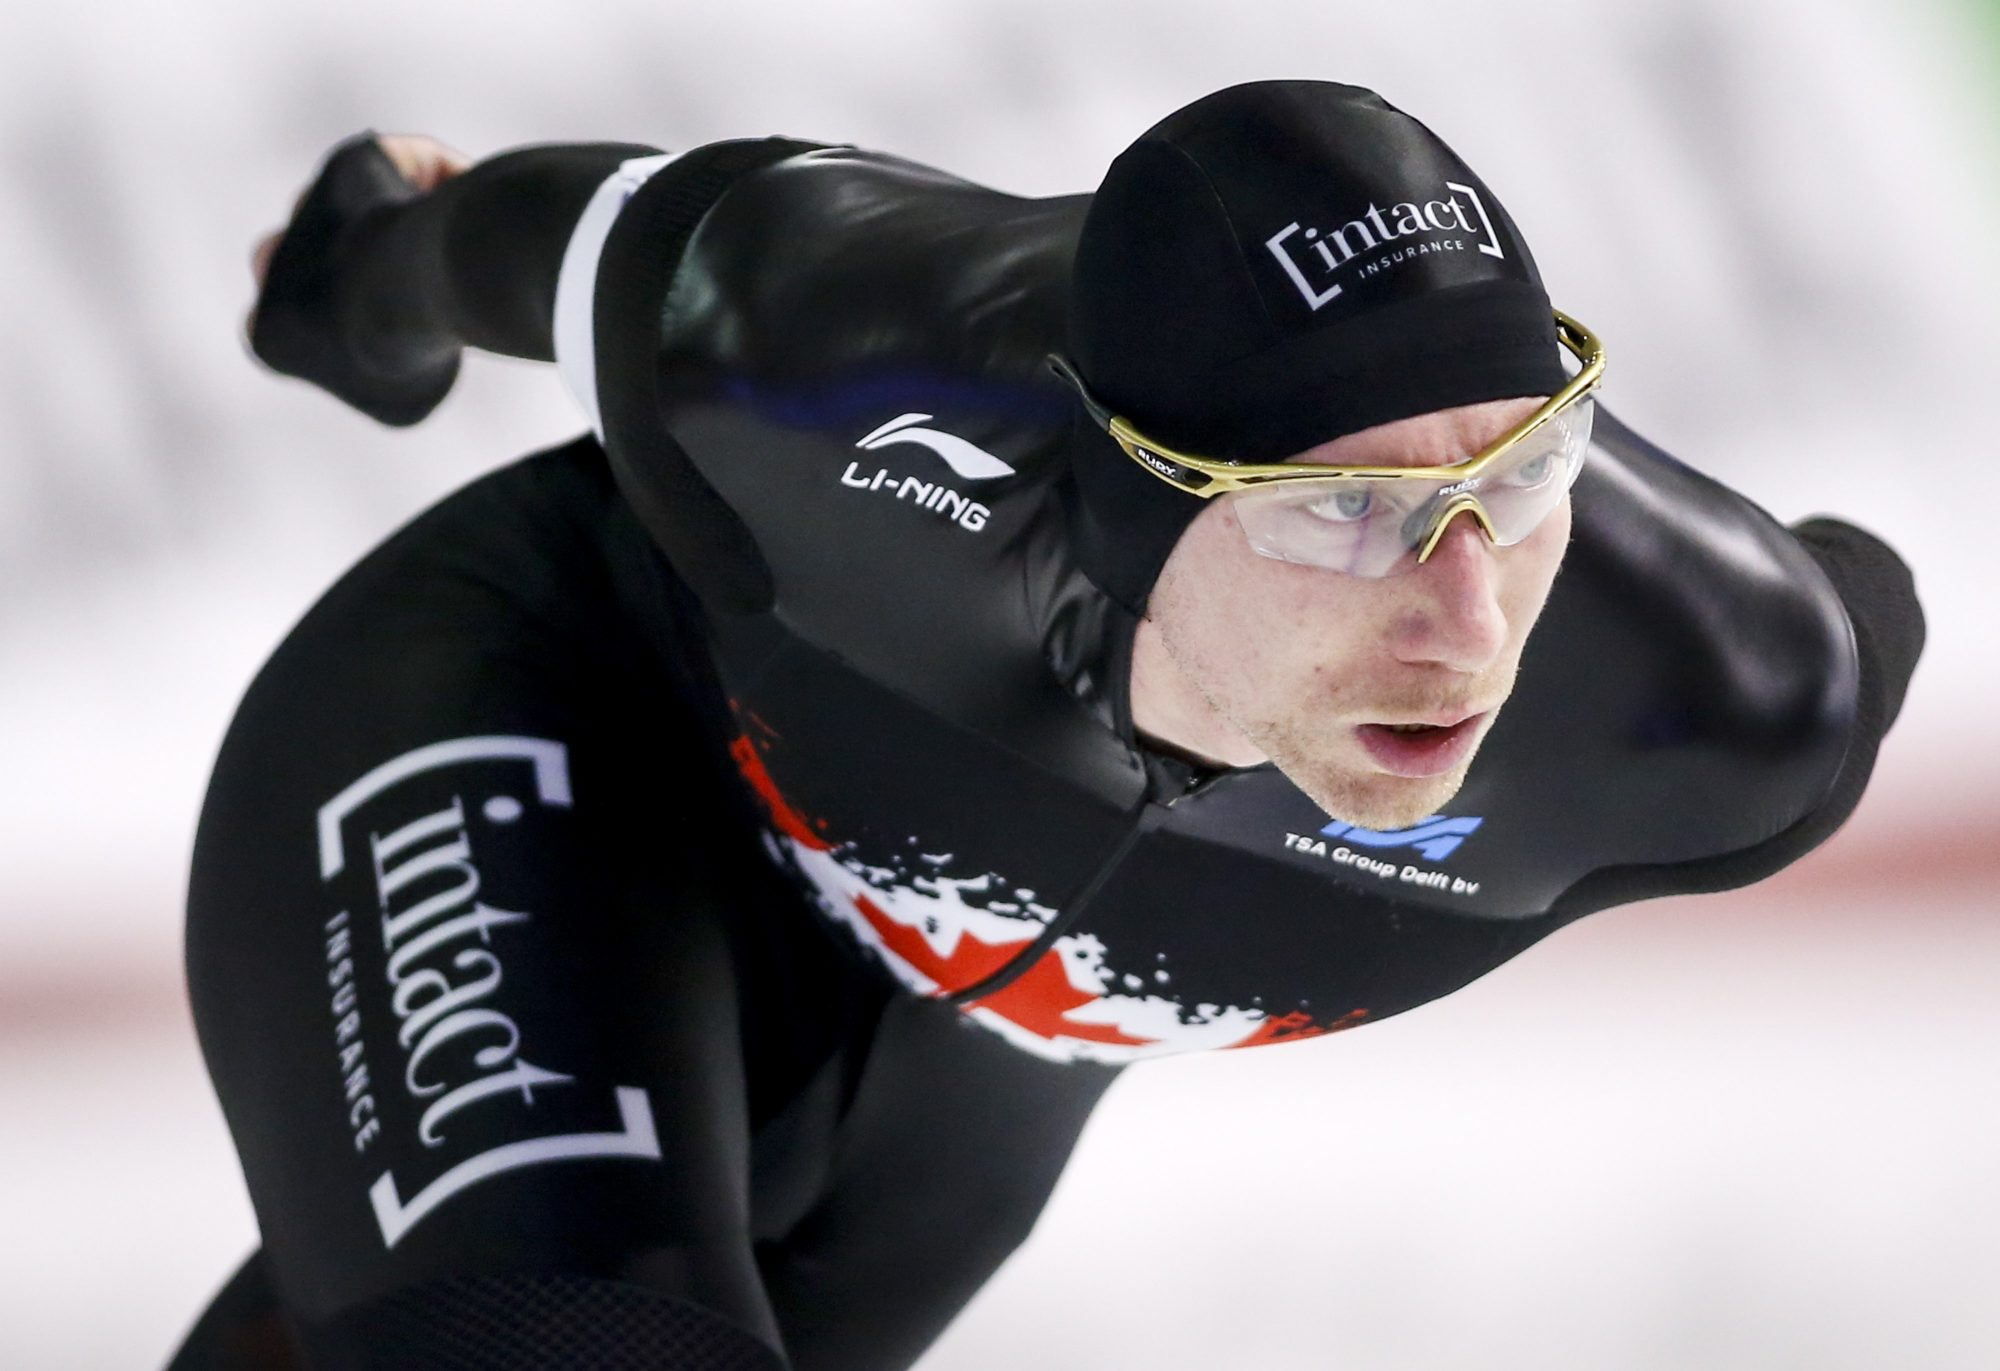 Ted-Jan Bloemen competes in a speed skating race